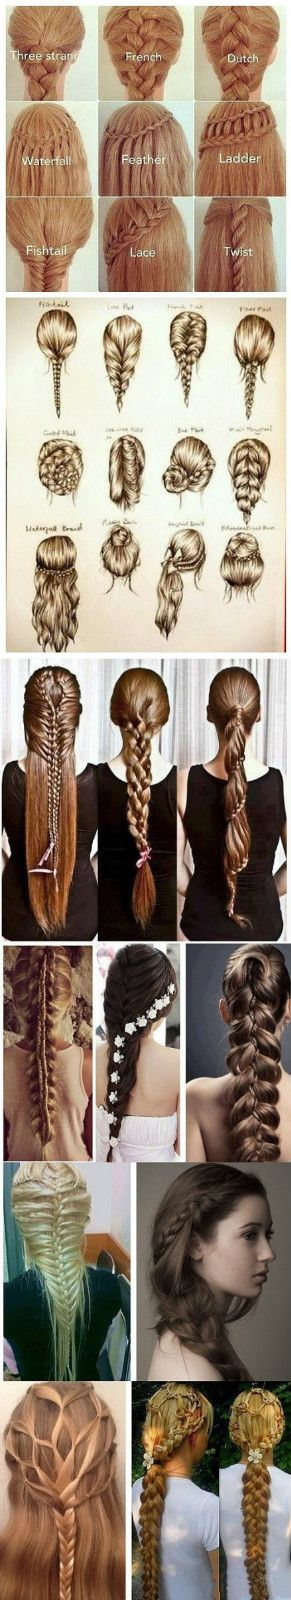 all kinds of braid weaving...it's enough for you to weave one kind for one day!